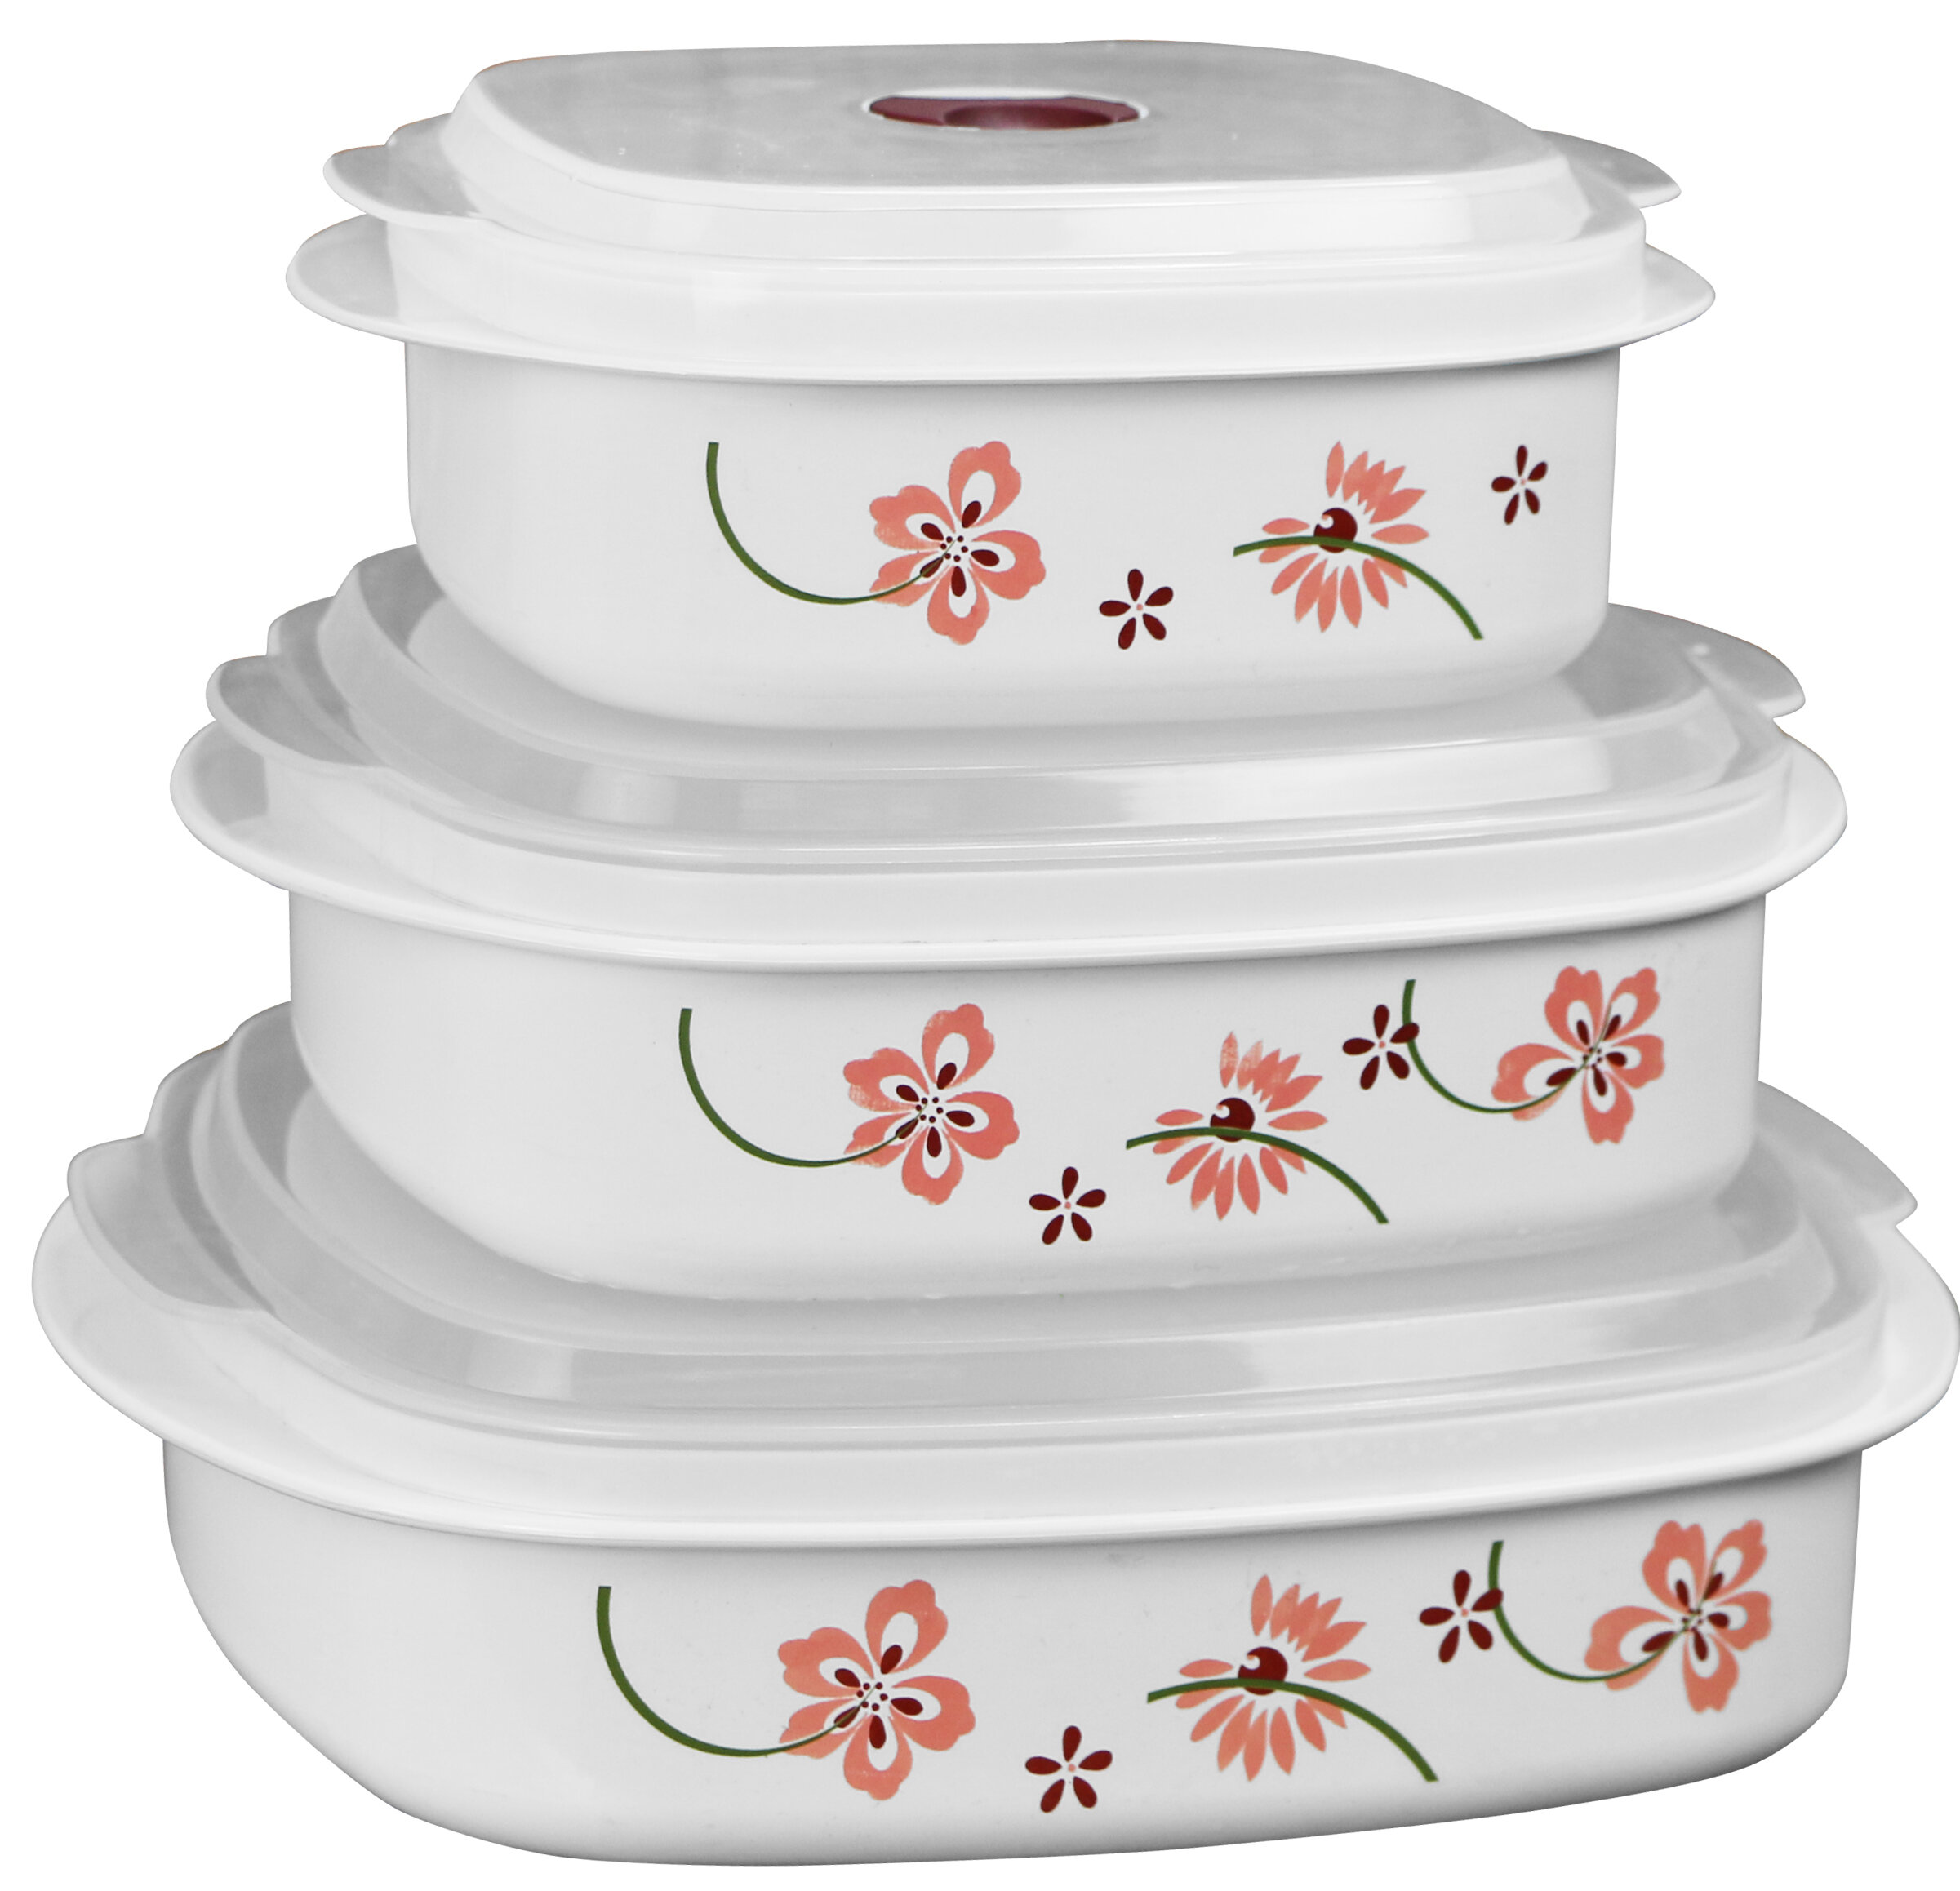 Corelle Microwave Cookware 3 Container Food Storage Set U0026 Reviews | Wayfair